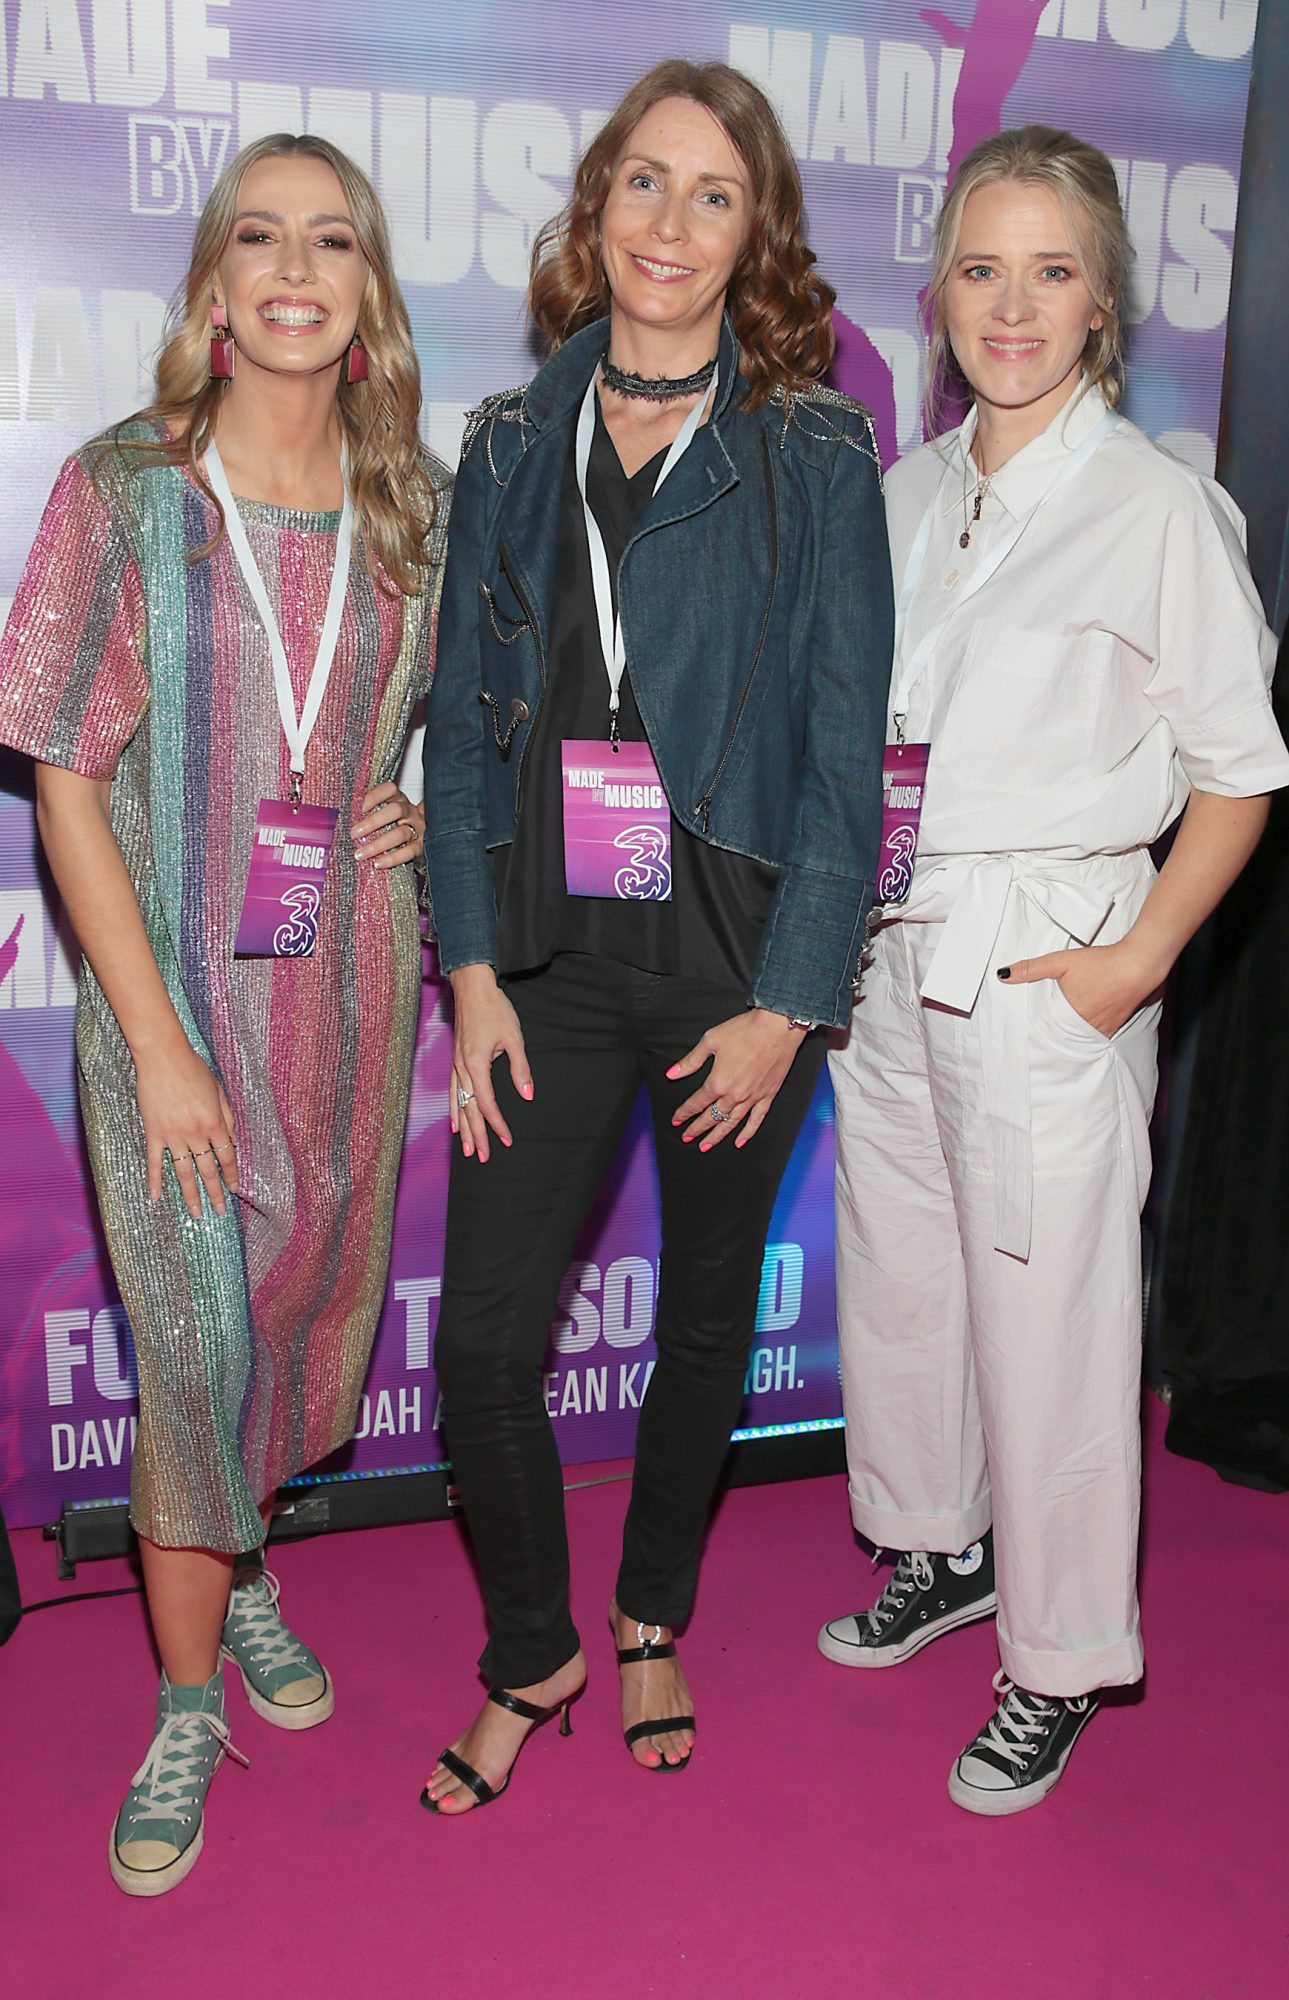 (L-R) Bláthnaid Treacy, Elaine Carey and Edith Bowman pictured at the launch of Three's MadeByMusic 2019 at Lost Lane. Three Ireland has unveiled its plans for this year's 'Made by Music' initiative, an innovative move which seeks to demonstrate the human connections that music creates by collaborating with some of Ireland's best artists from the thriving Irish music scene. Picture: Brian McEvoy